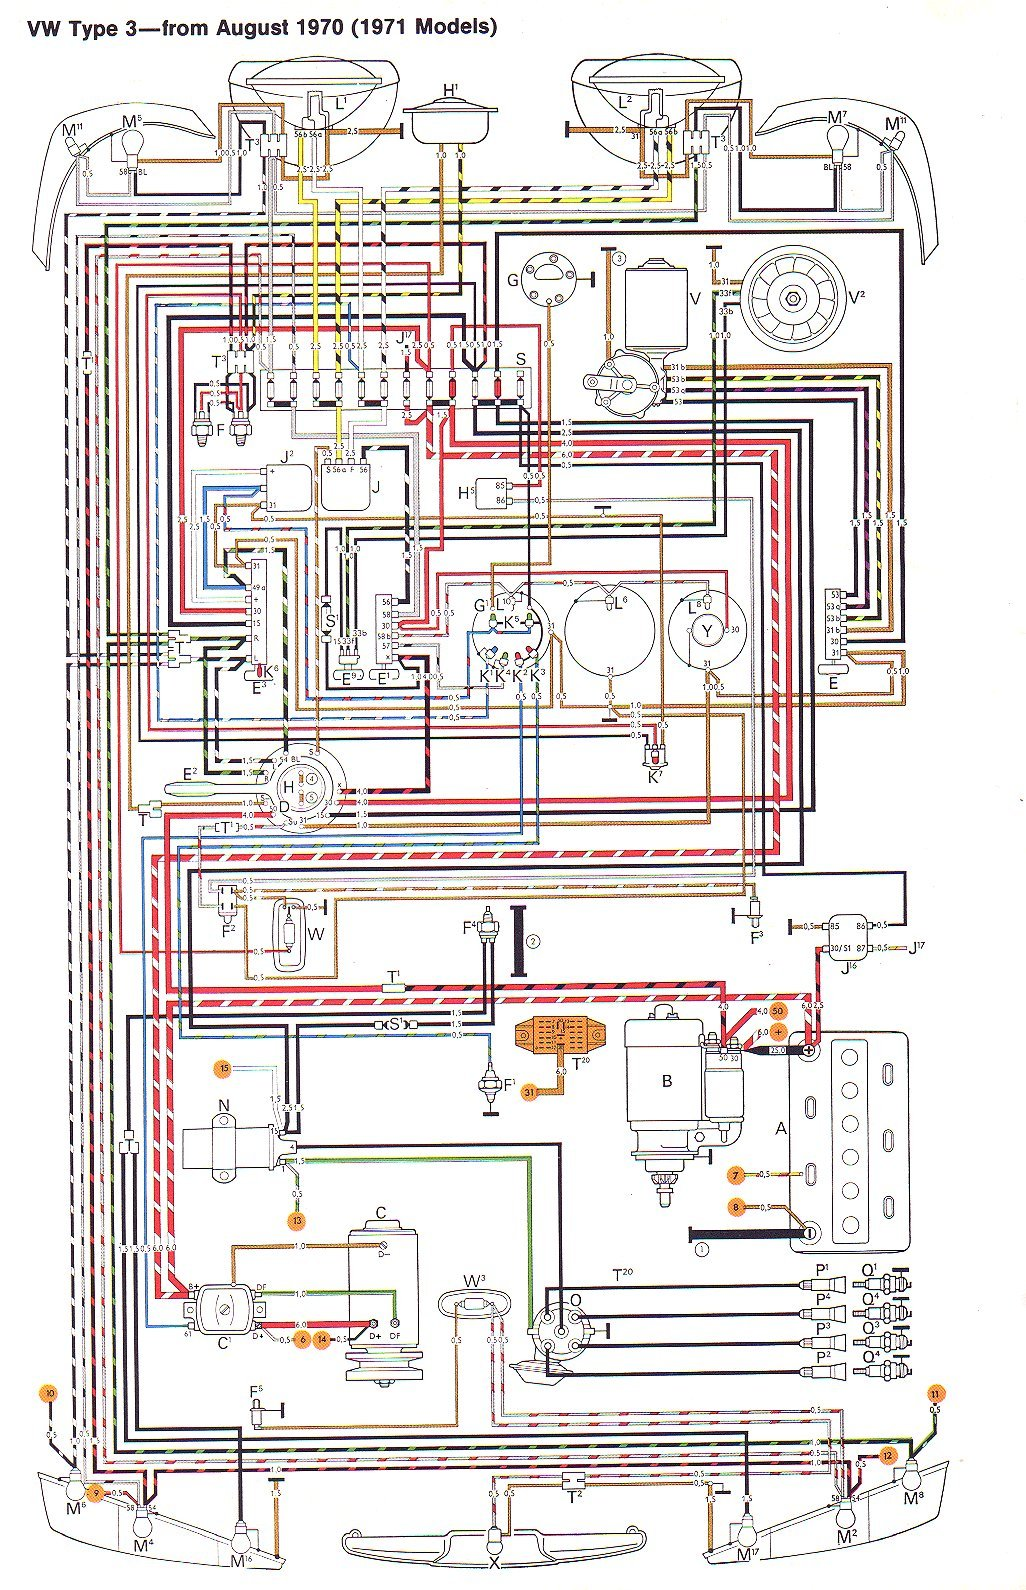 Vw Super Beetle Fuel Injection Wiring Diagram | Wiring Liry on